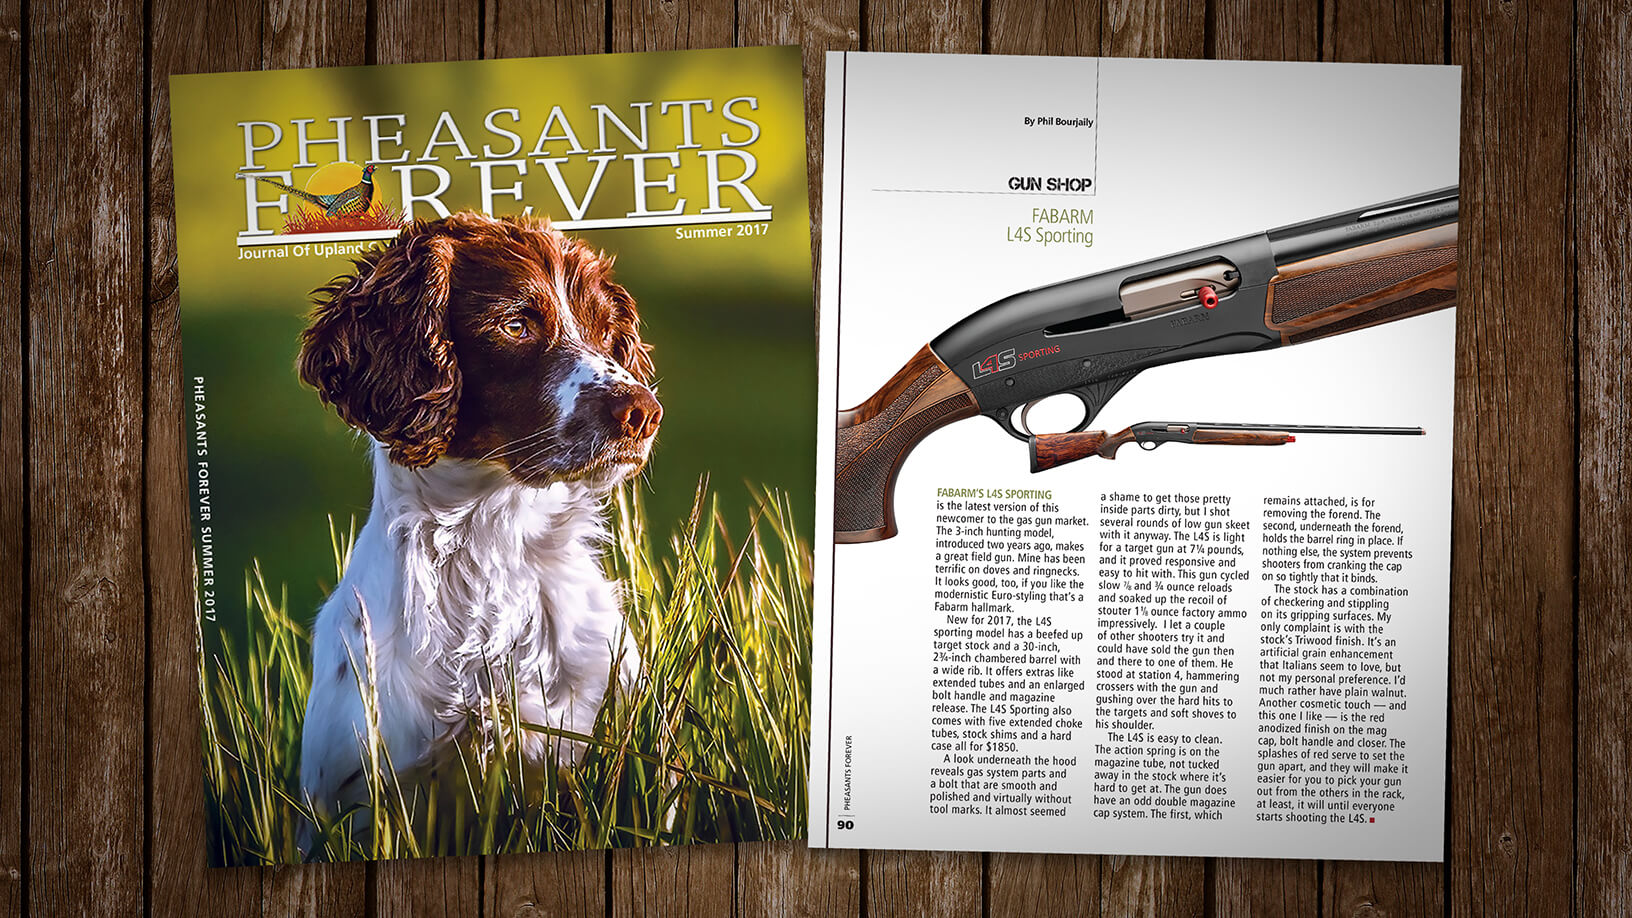 [Pheasants Forever: Summer 17] Gun Shop: Fabarm L4S Sporting